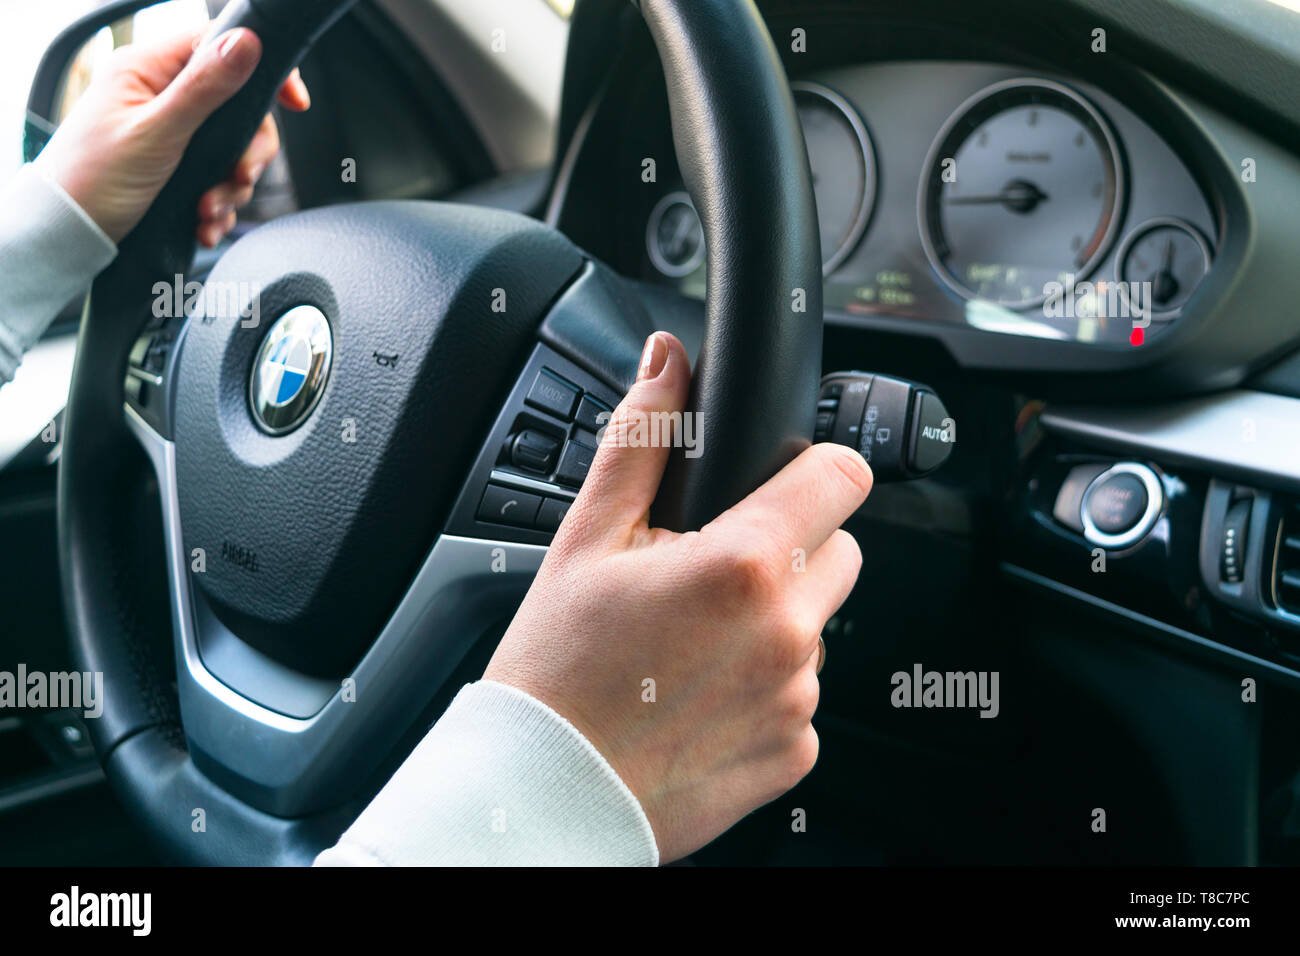 Sankt-Petersburg, Russia, November 16, 2017: Woman's hands on a steering wheel driving BMW X5 F15. Hands holding steering wheel. Modern Car interior d - Stock Image